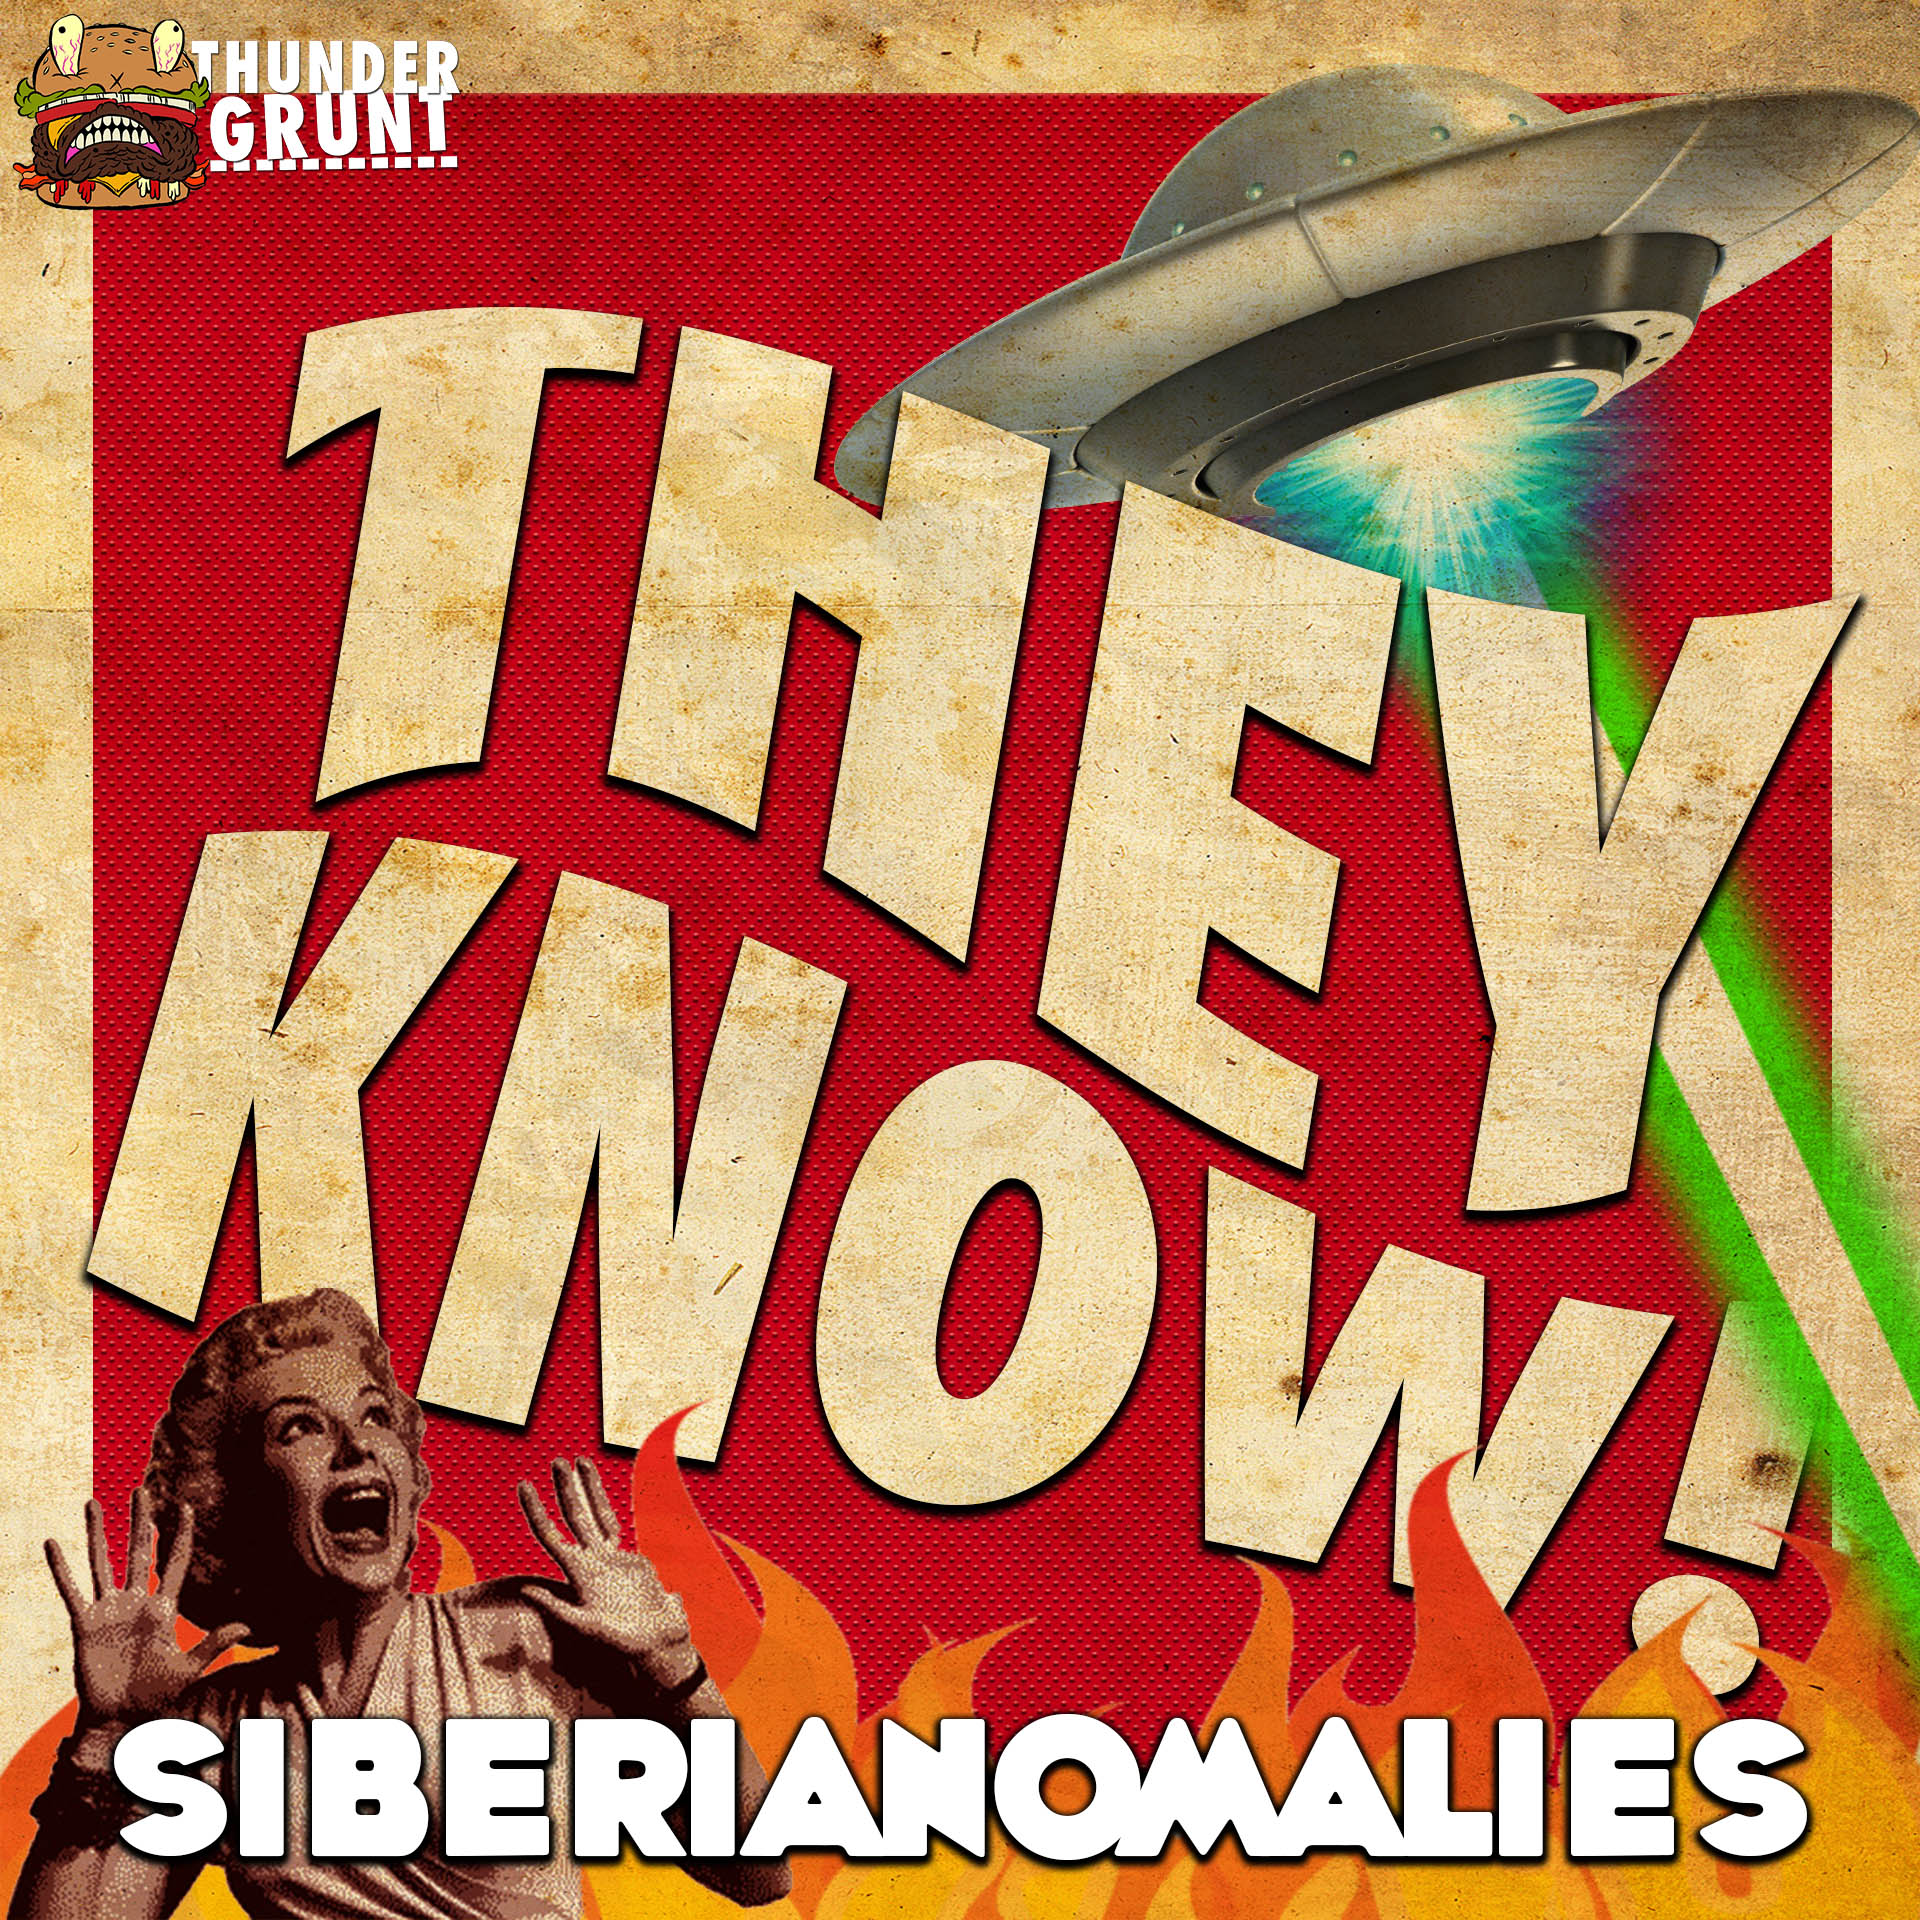 THEY KNOW! 017 | SIBERIANOMALIES